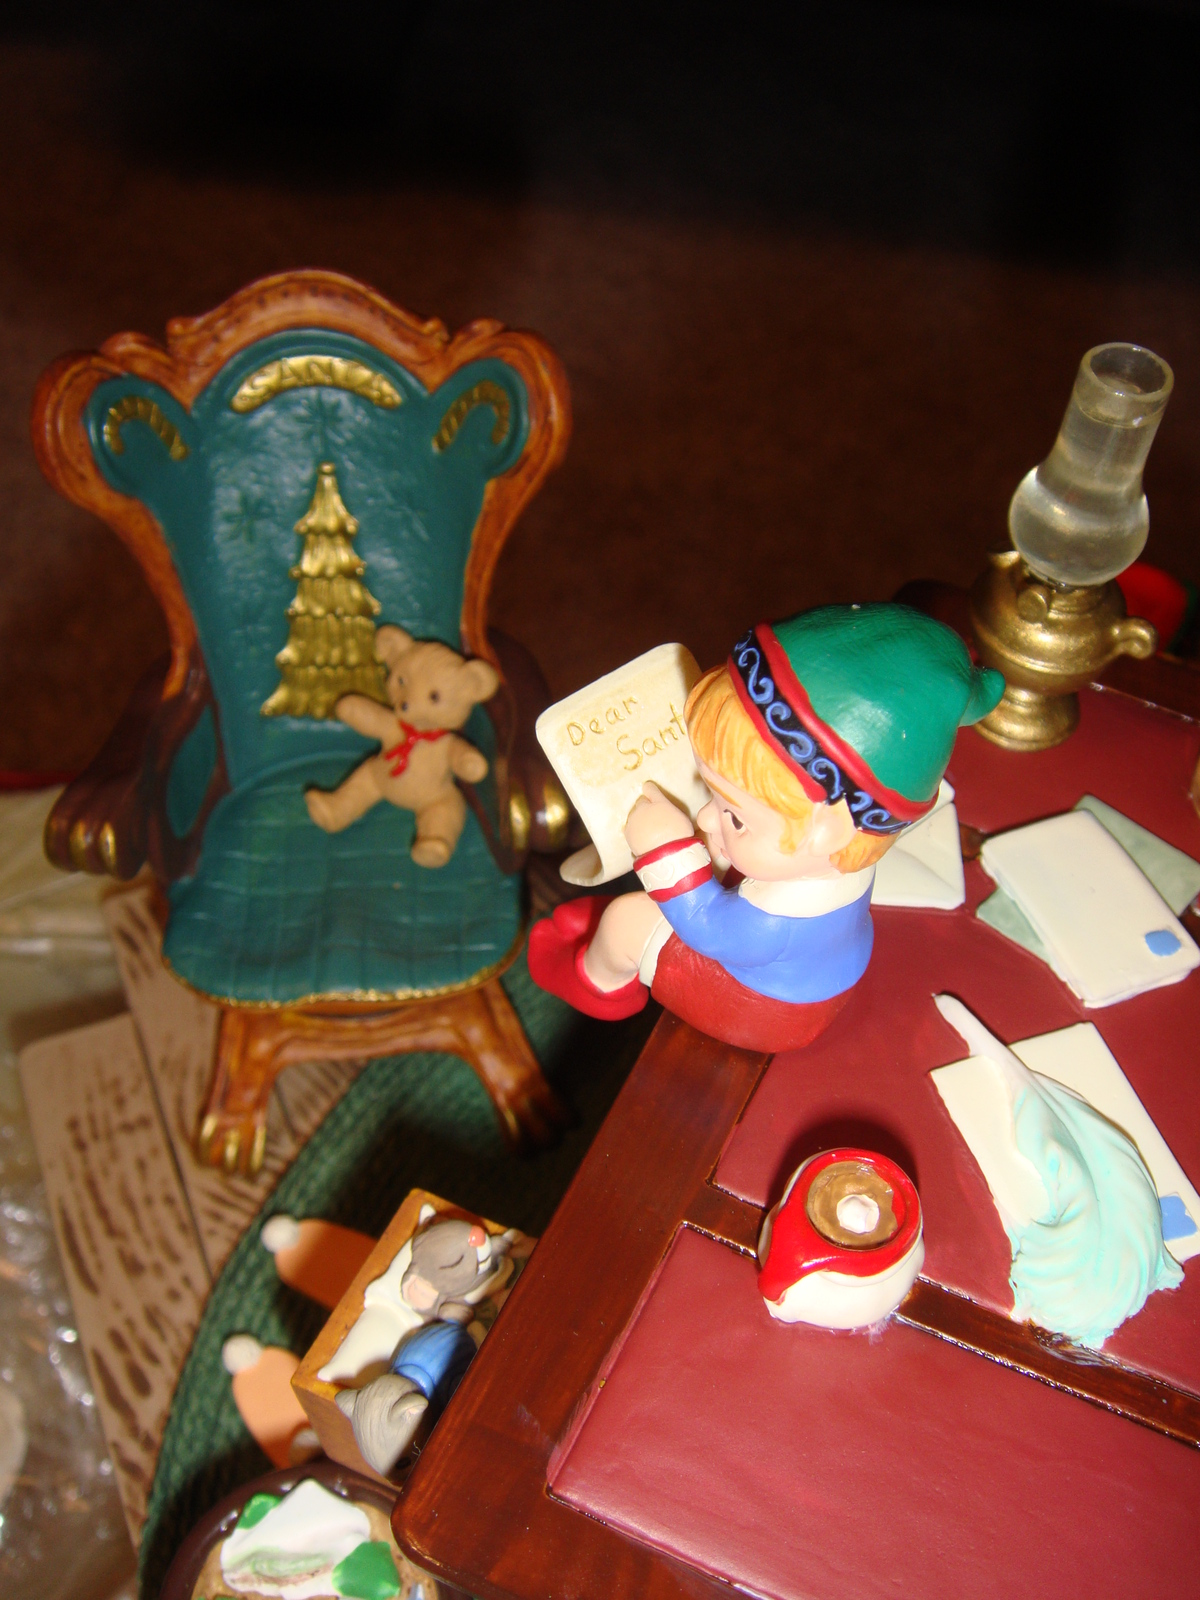 Hallmark Santa's Desk 2001 Limited Edition Studio Display image 10